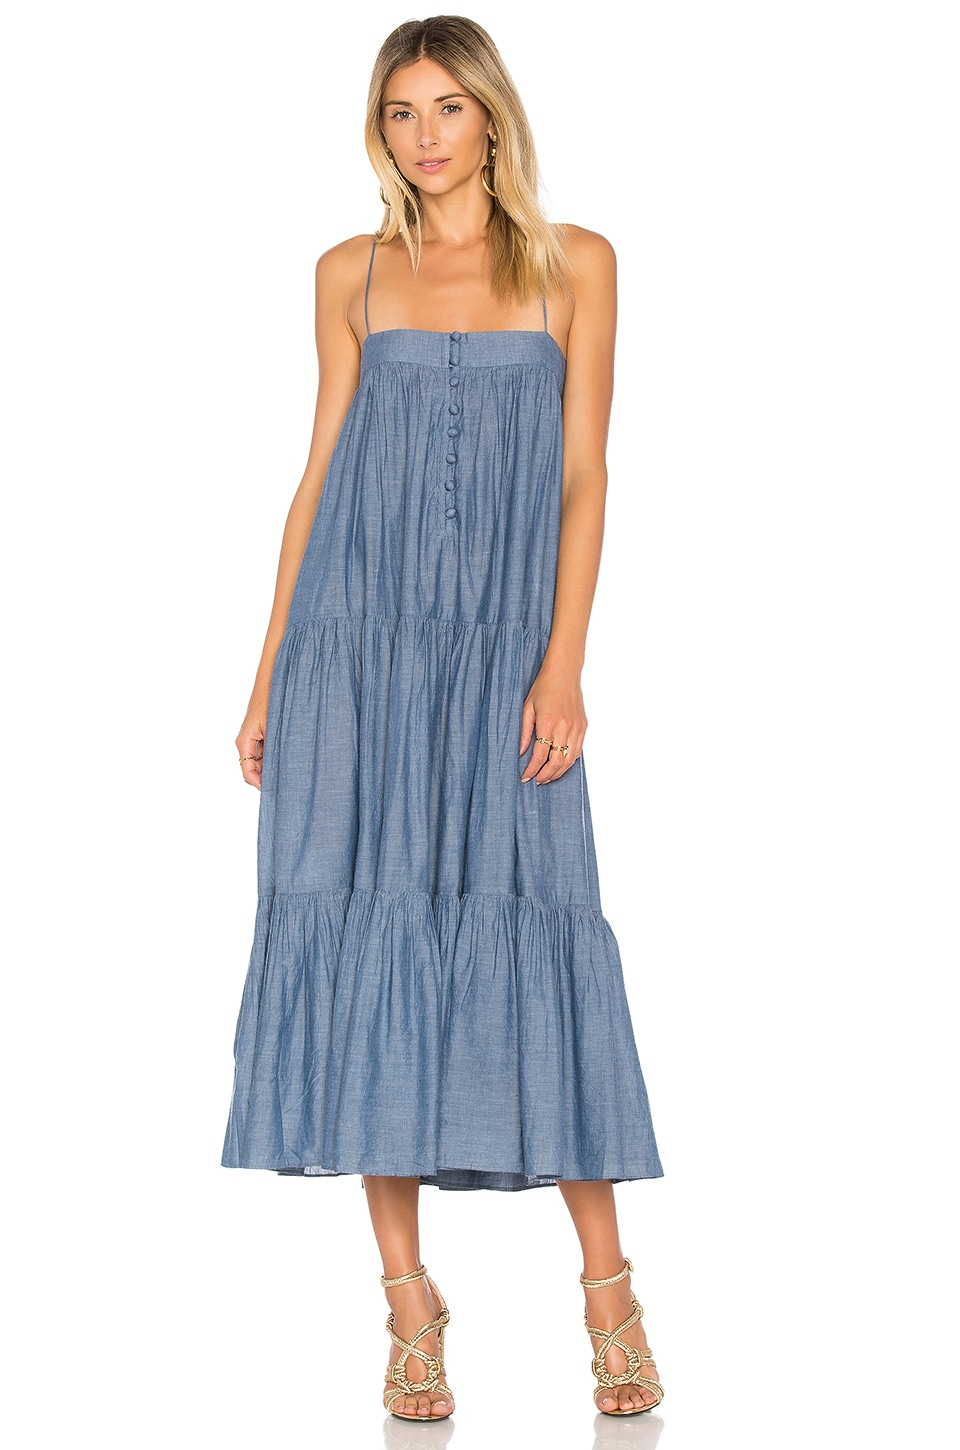 APIECE APART Tangiers Spaghetti Dress in Chambray